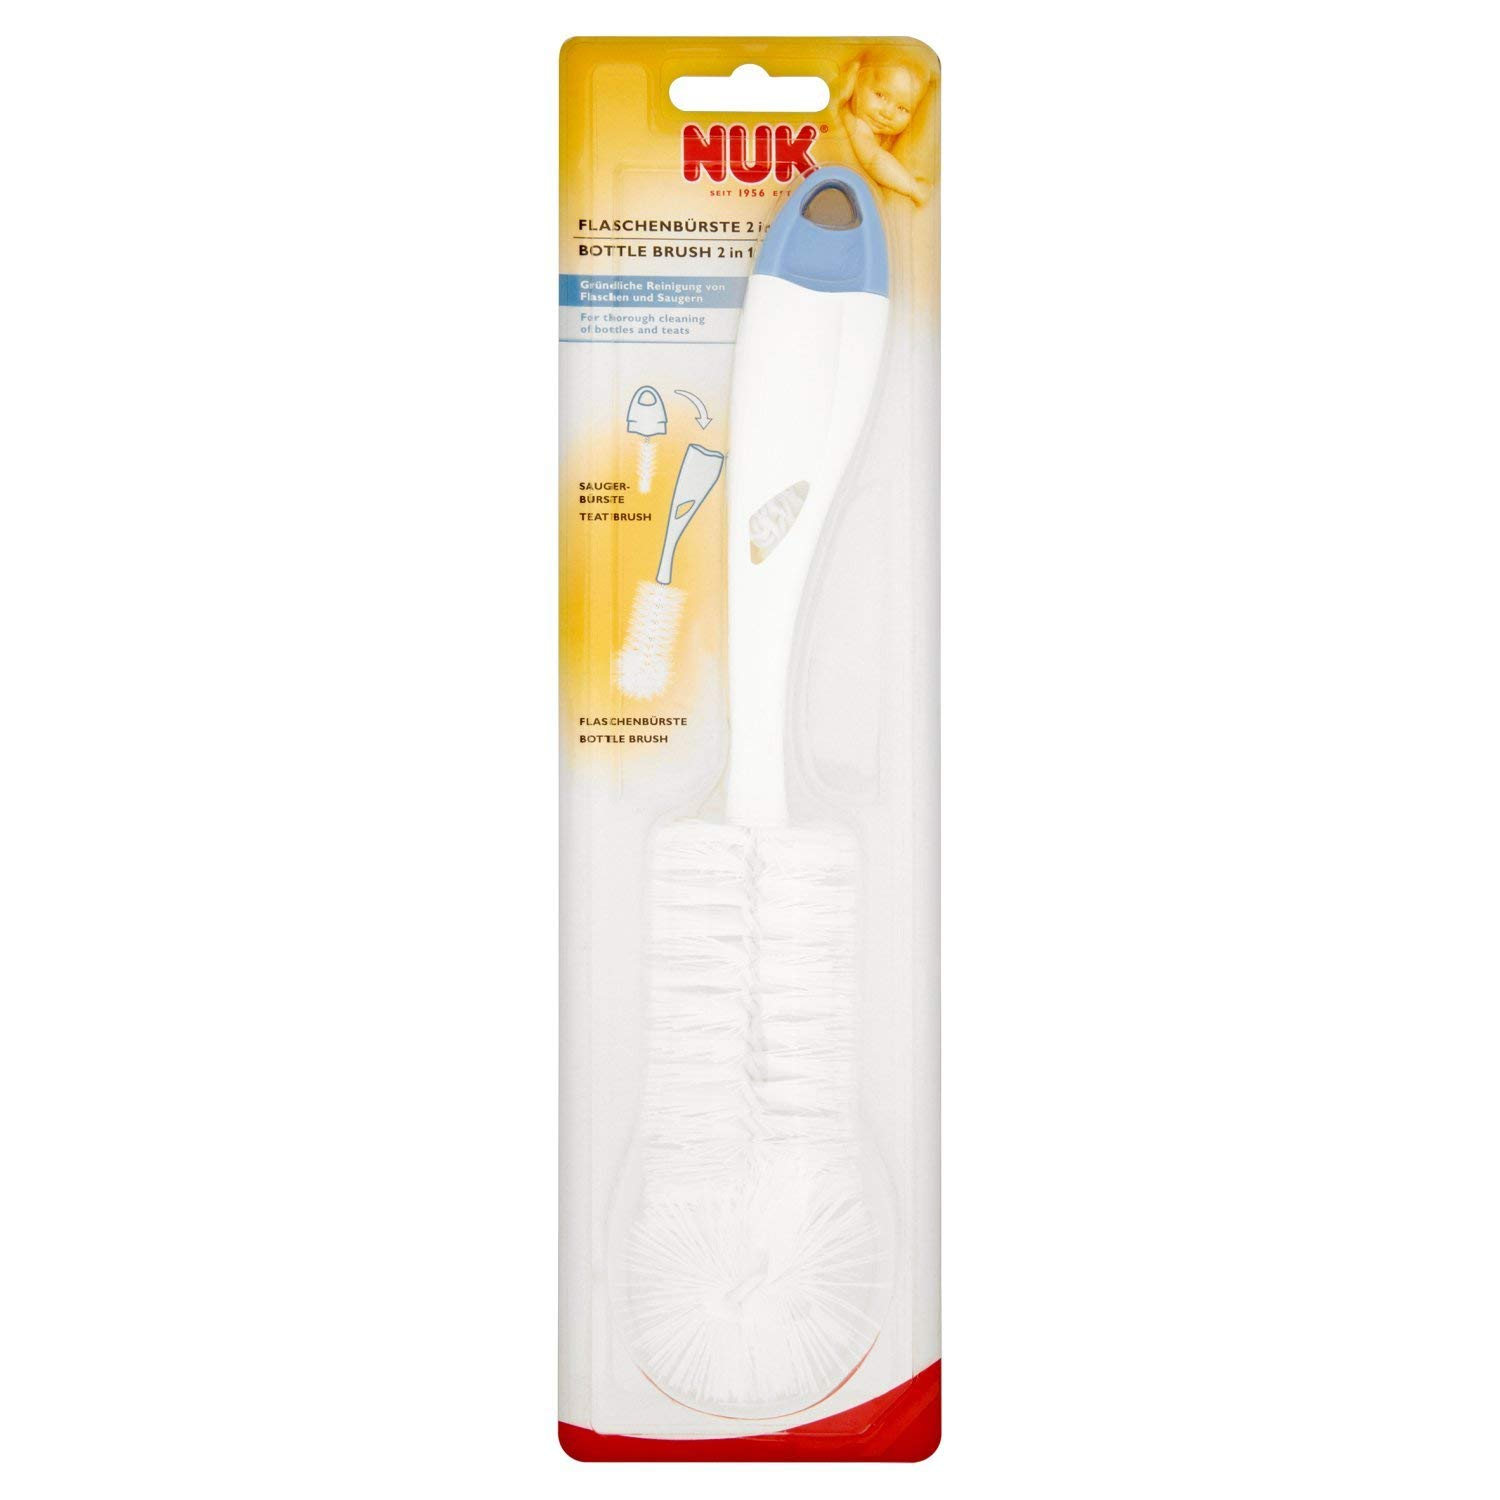 2-in-1 Design with A Separate Small Brush NUK Bottle and Teat Brush